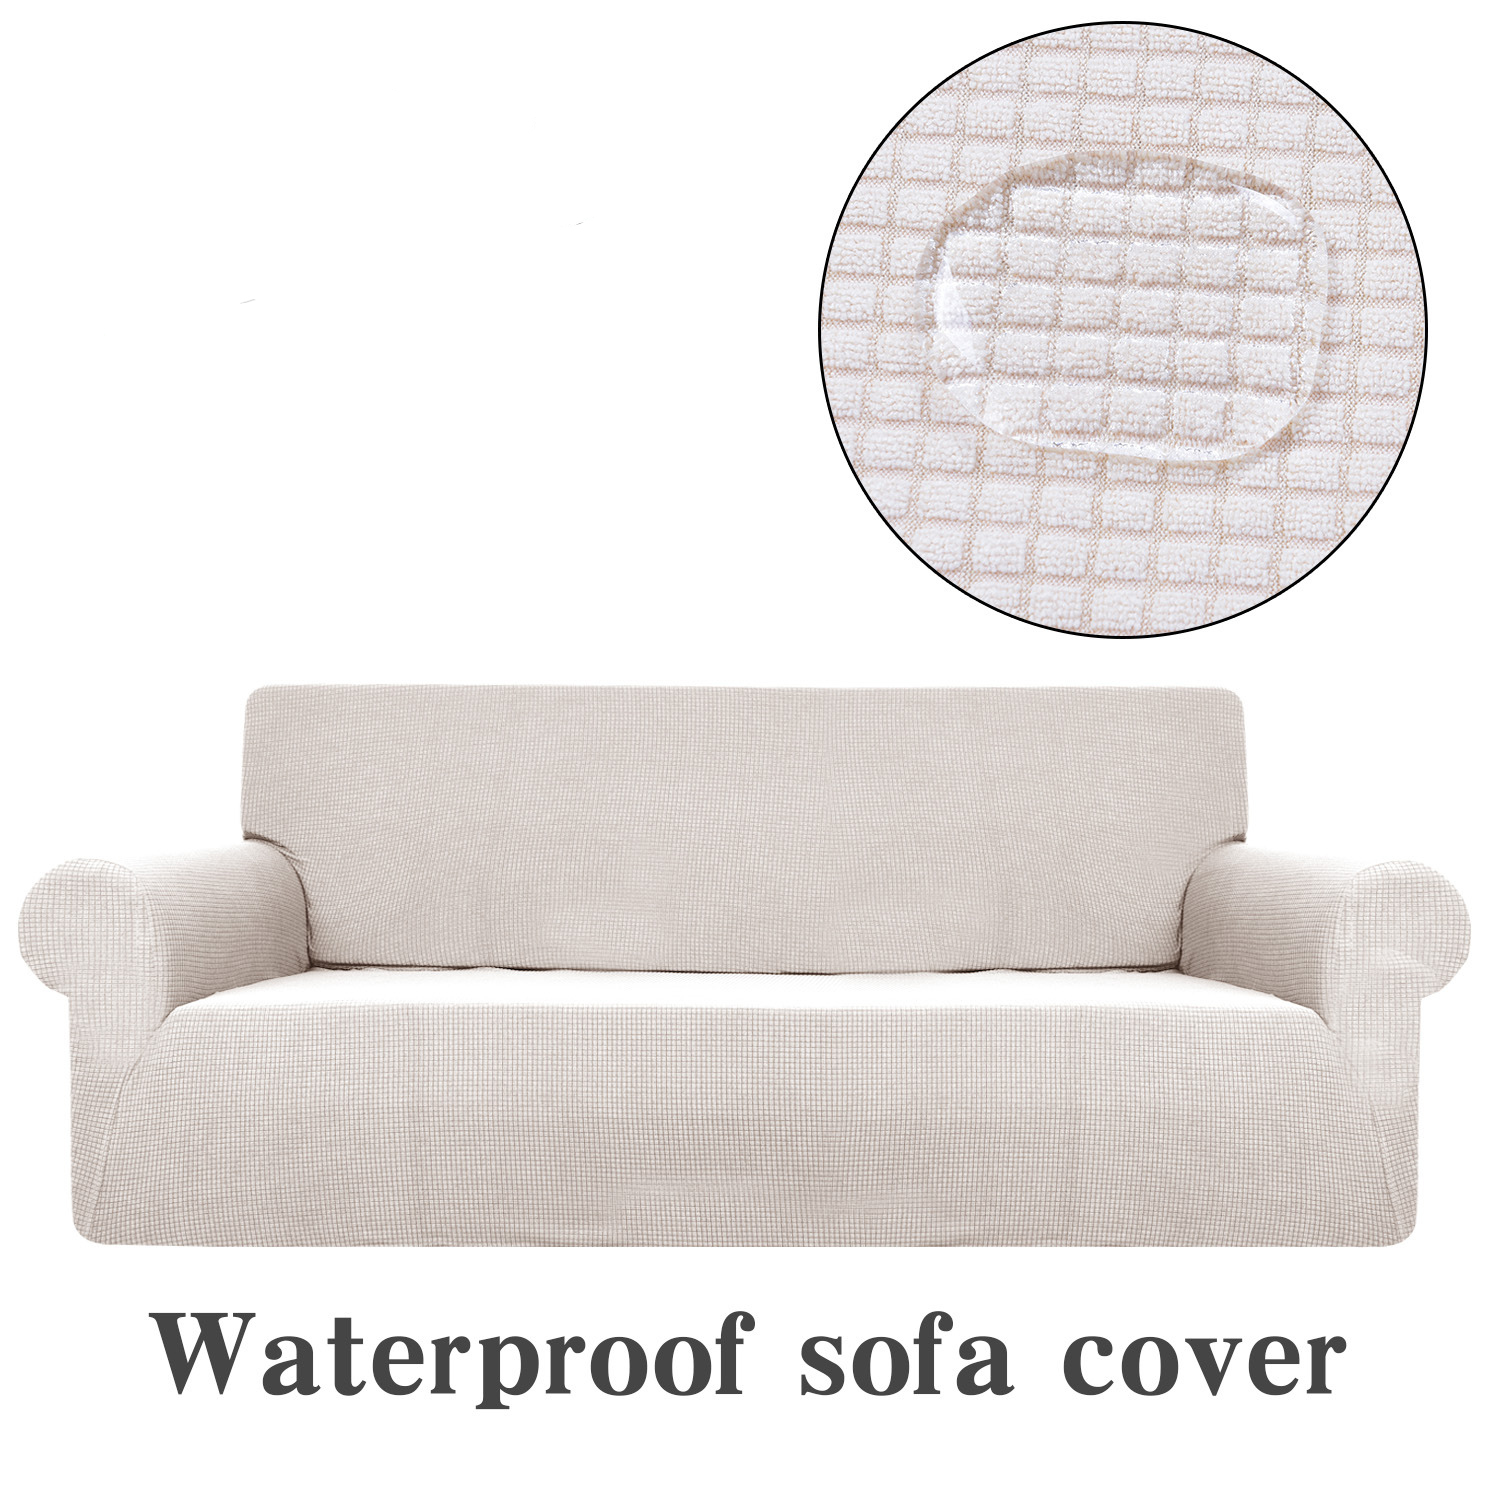 Outstanding Universal Sofa Cover Waterproof Couch Slipcovers Elastic Theyellowbook Wood Chair Design Ideas Theyellowbookinfo